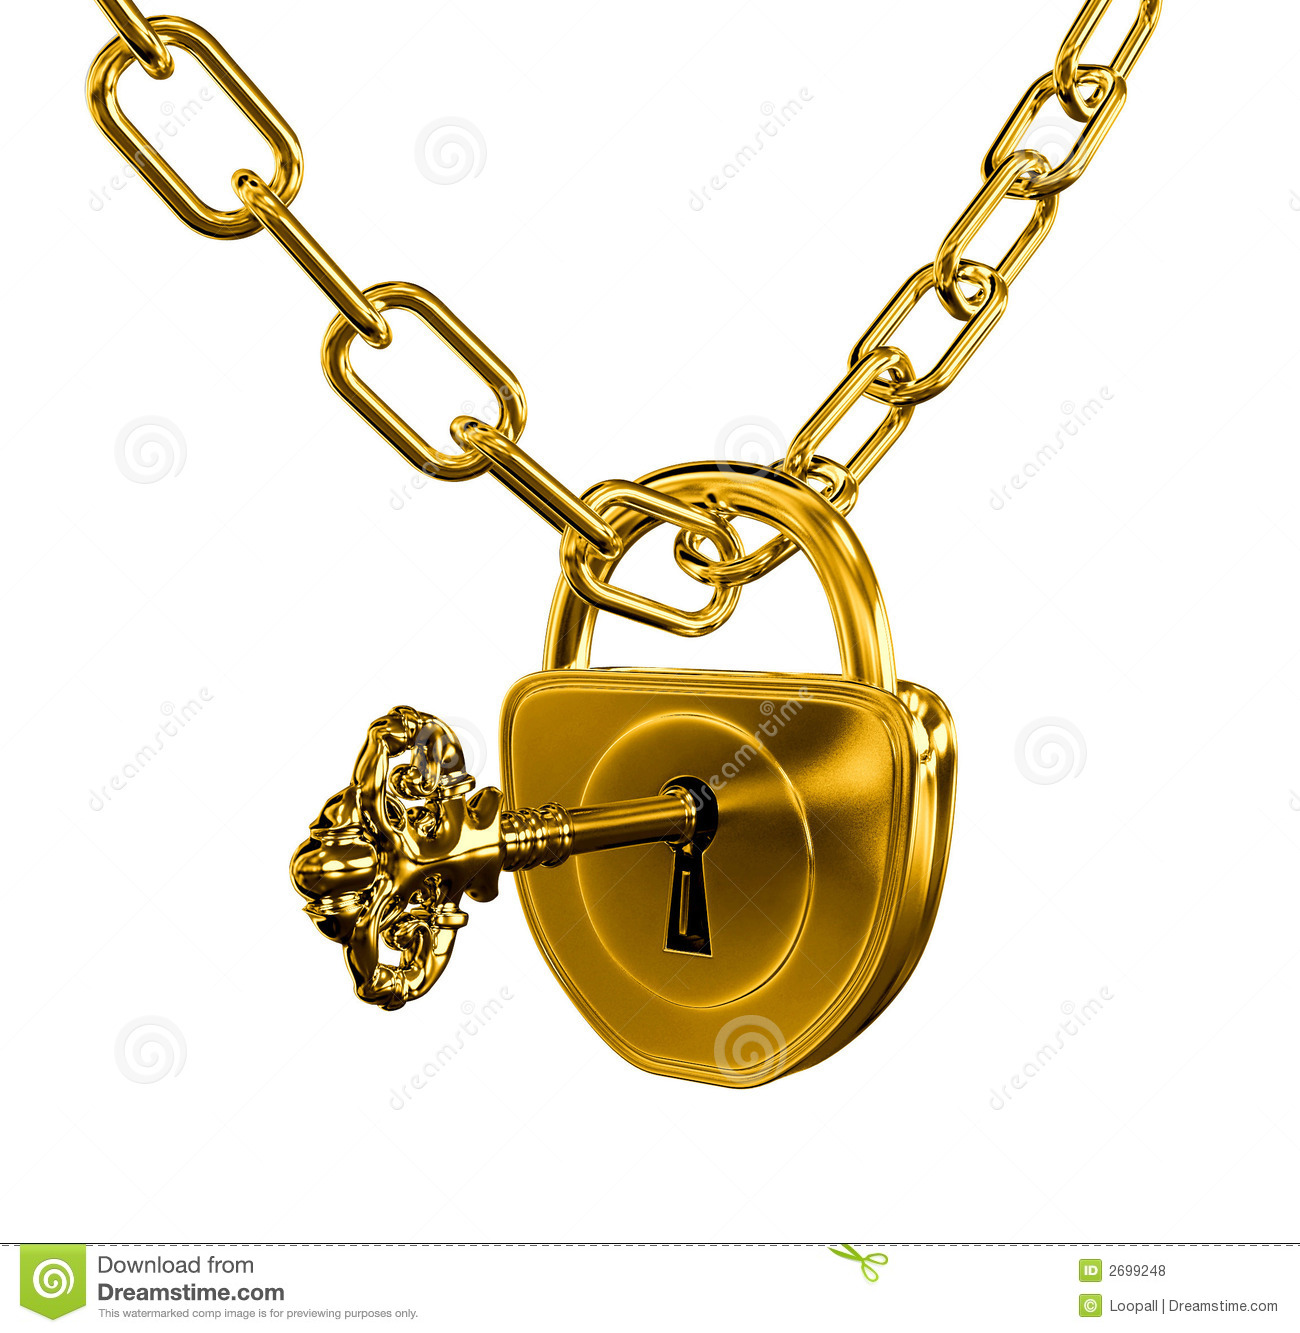 Gold lock with key and chain royalty free stock photos image 2699248 - How to open chain lock ...